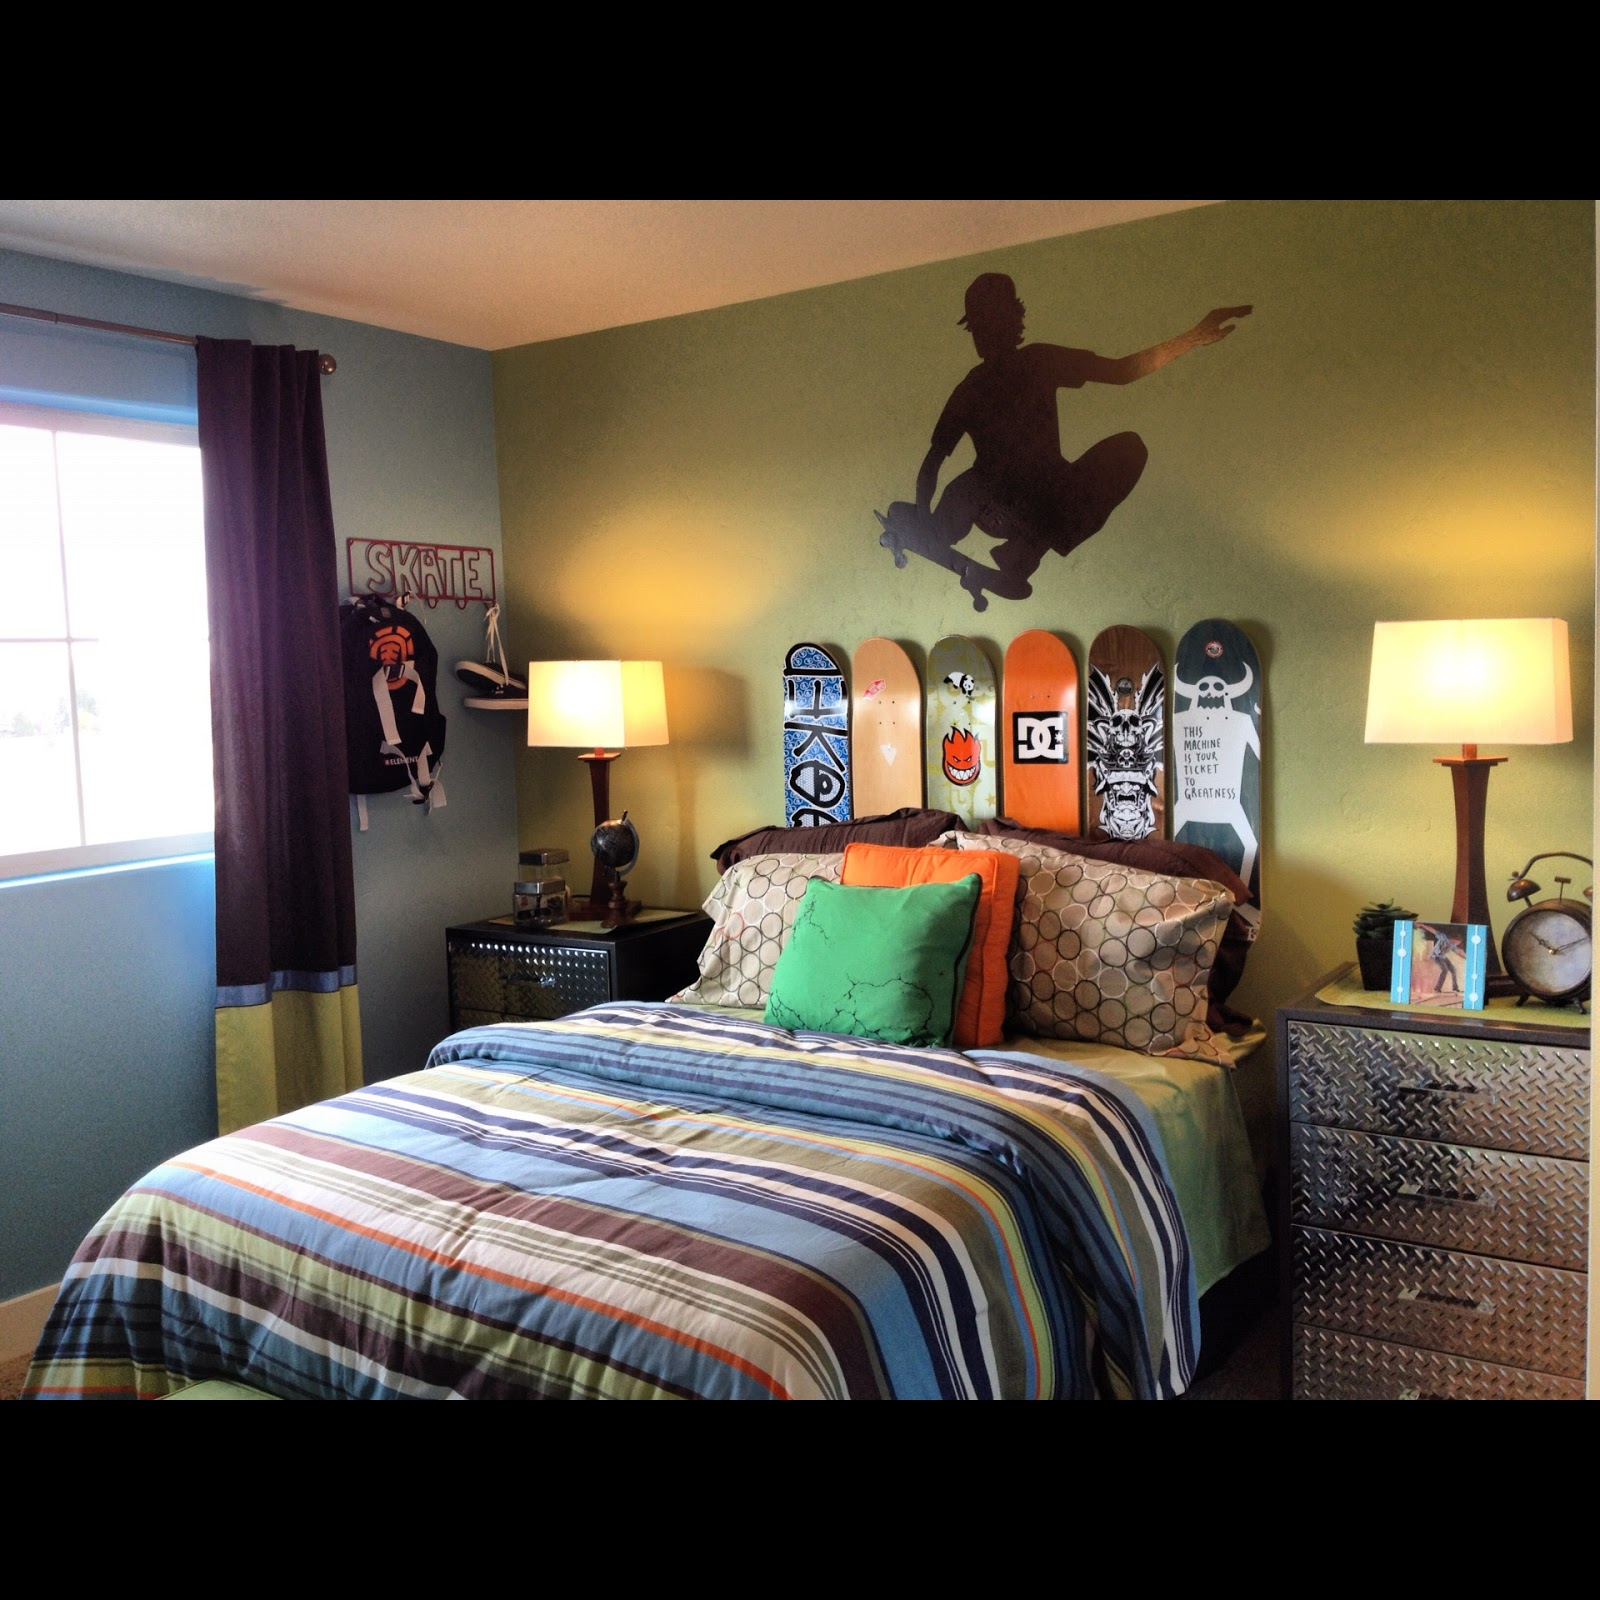 Boys Bedroom Decor: The Habitual Designer: Re-vamp Your Kids Camp For